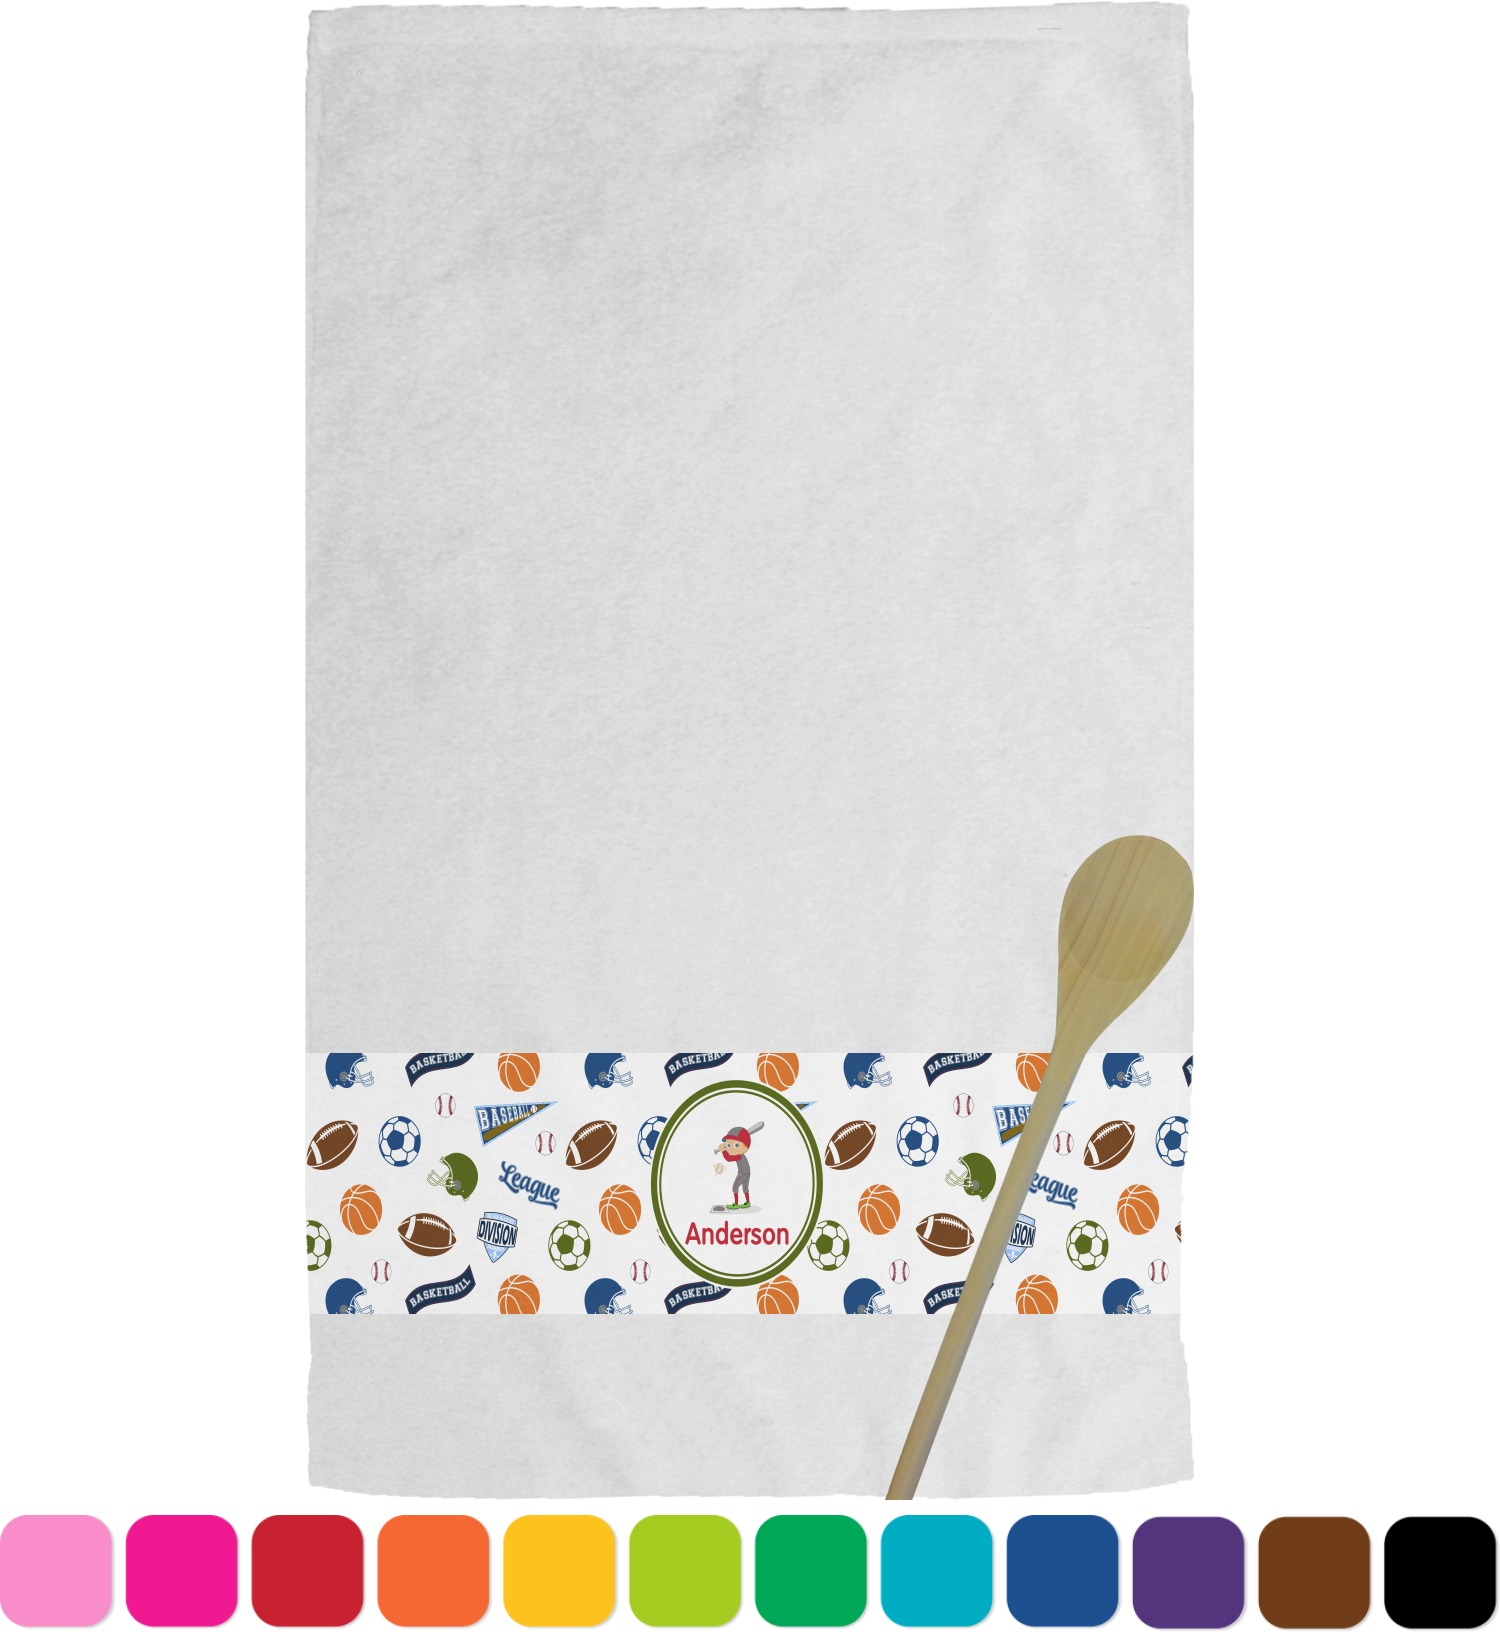 how to make personalized dish towels